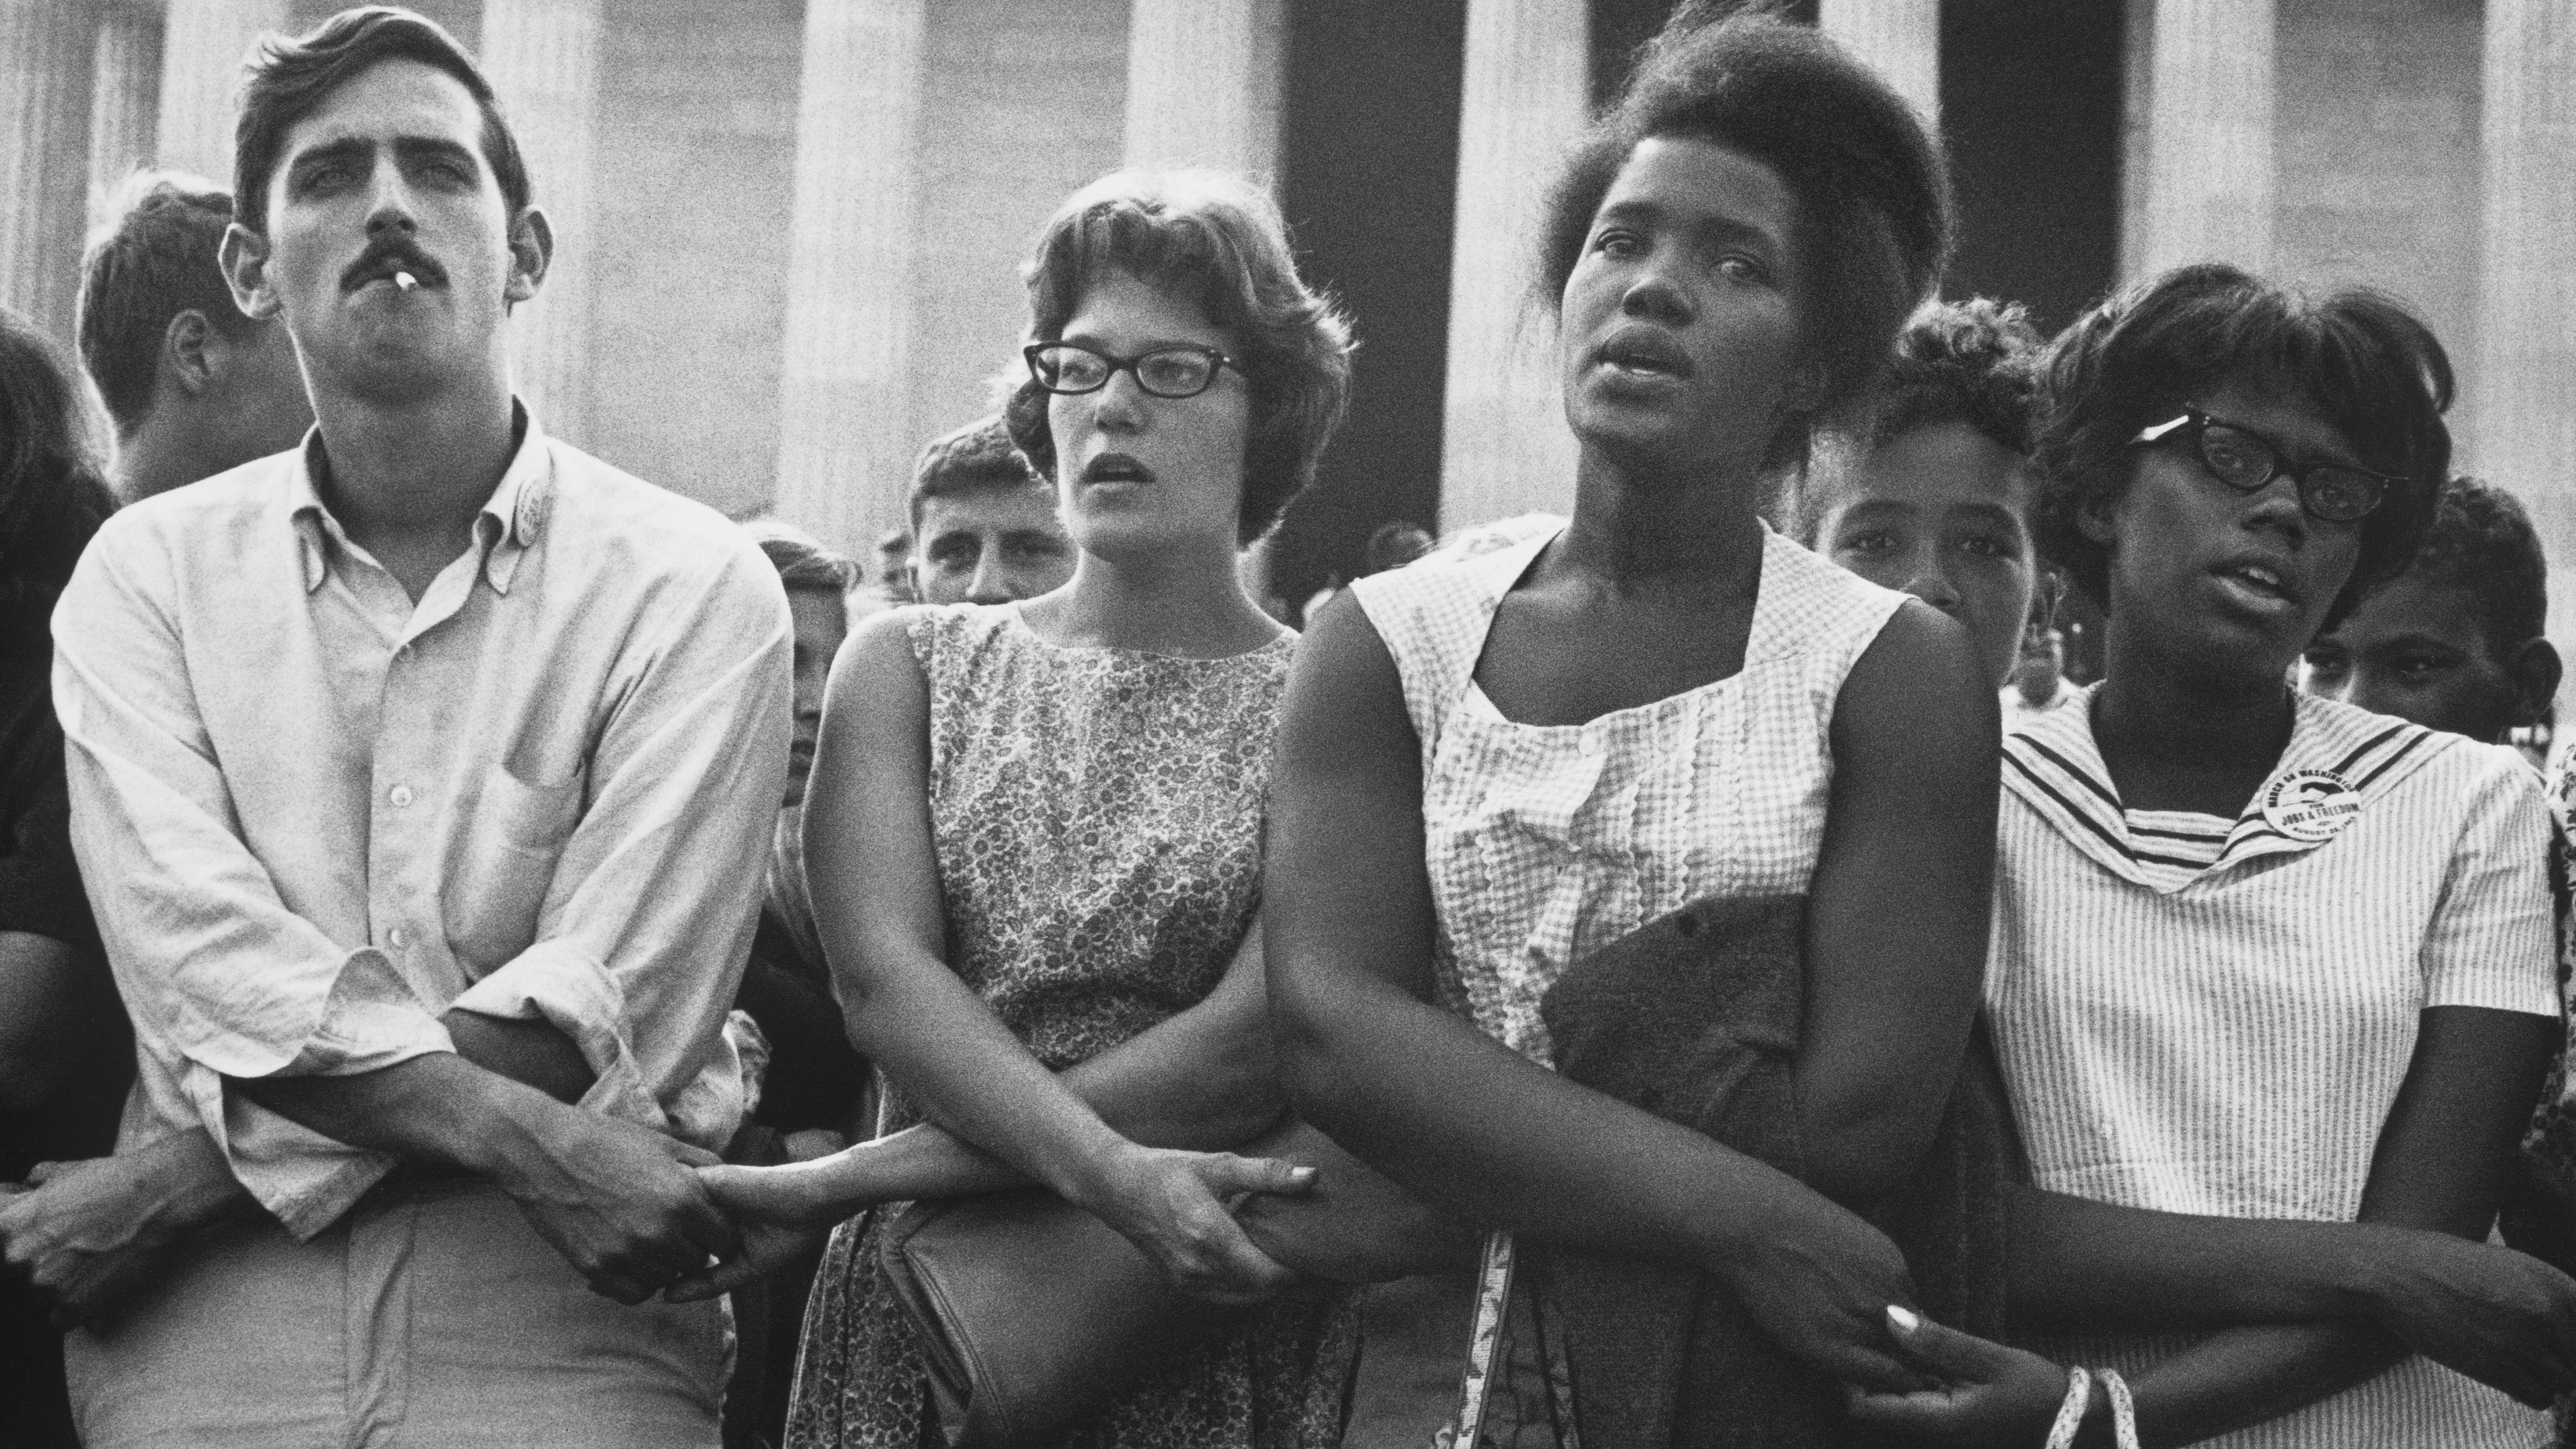 Photos from This Is the Day: The March on Washington, Aug. 28, 1963